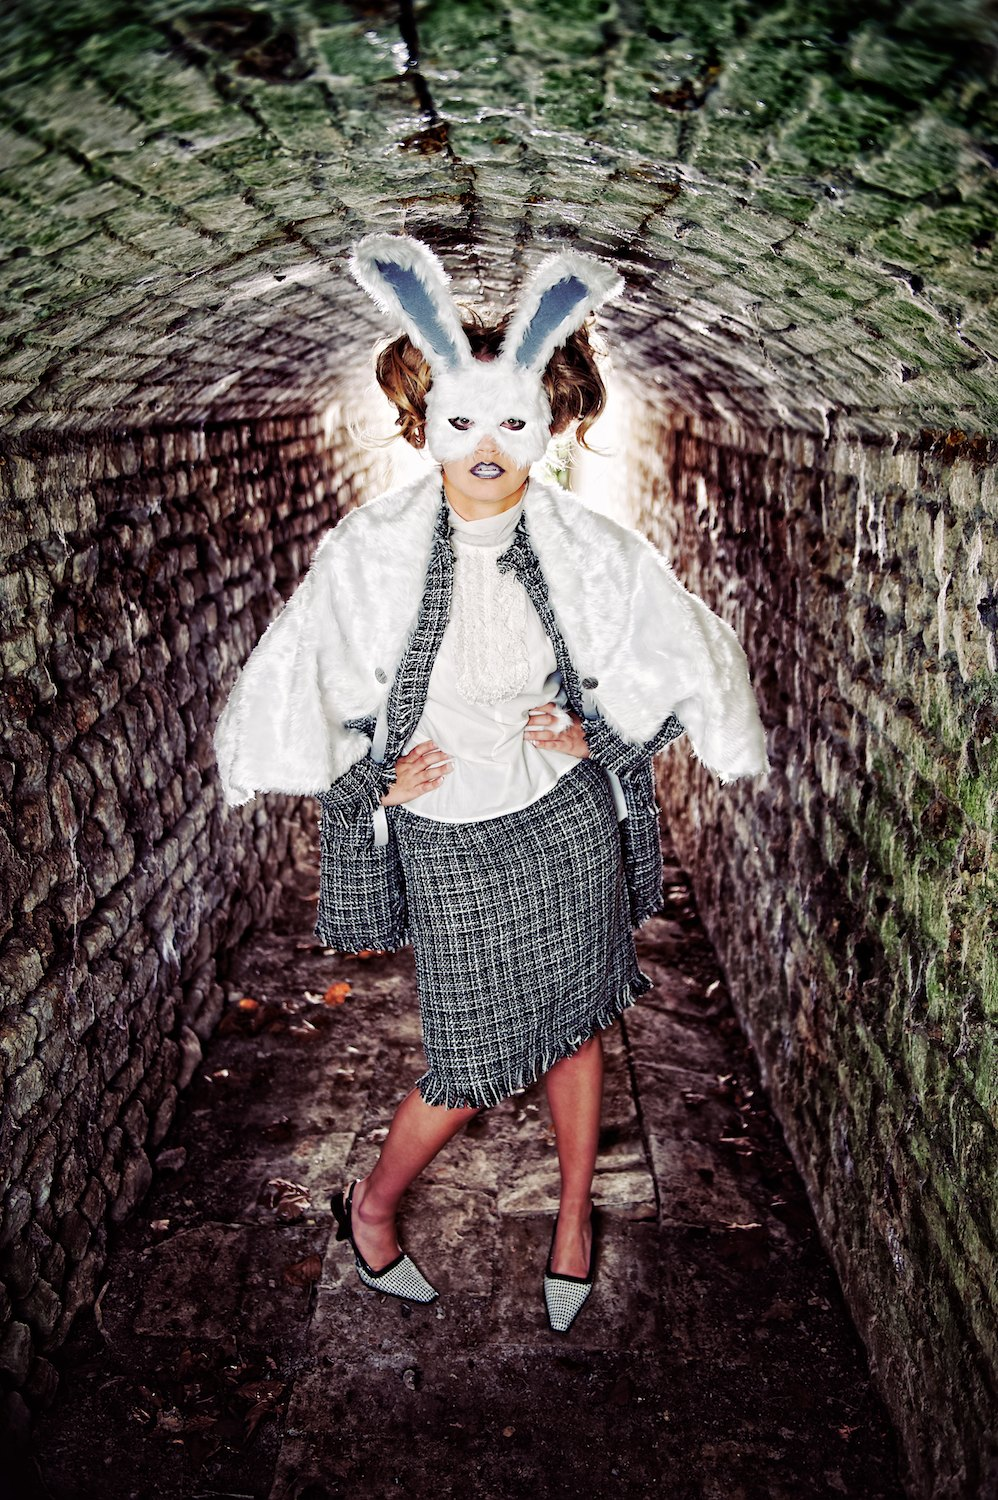 mystic magic, Pixbeat Photo, mask, rabbit mask, masquerade, animal, animal masks, fashion, vintage, vintage fashion, photo, photography, fur, feathers, couture, designer, inspiration, imagination, avant garde, creative, fashion photography, Animal Heritage, fashion designer, mask designer, rabbit, power dressing